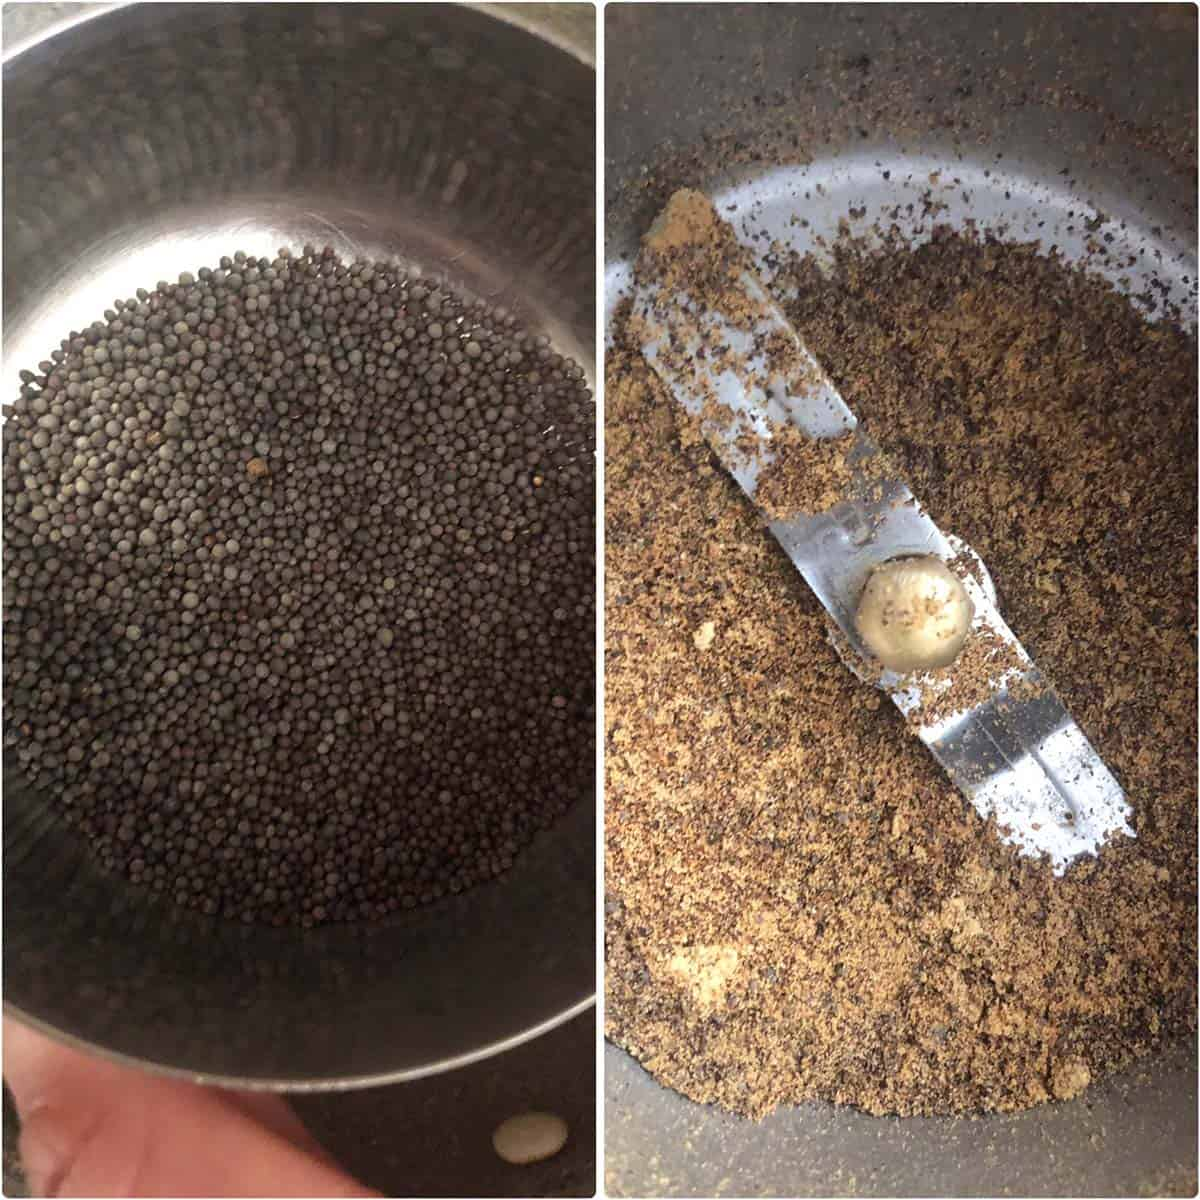 Step by step photos showing roasted and ground mustard seeds